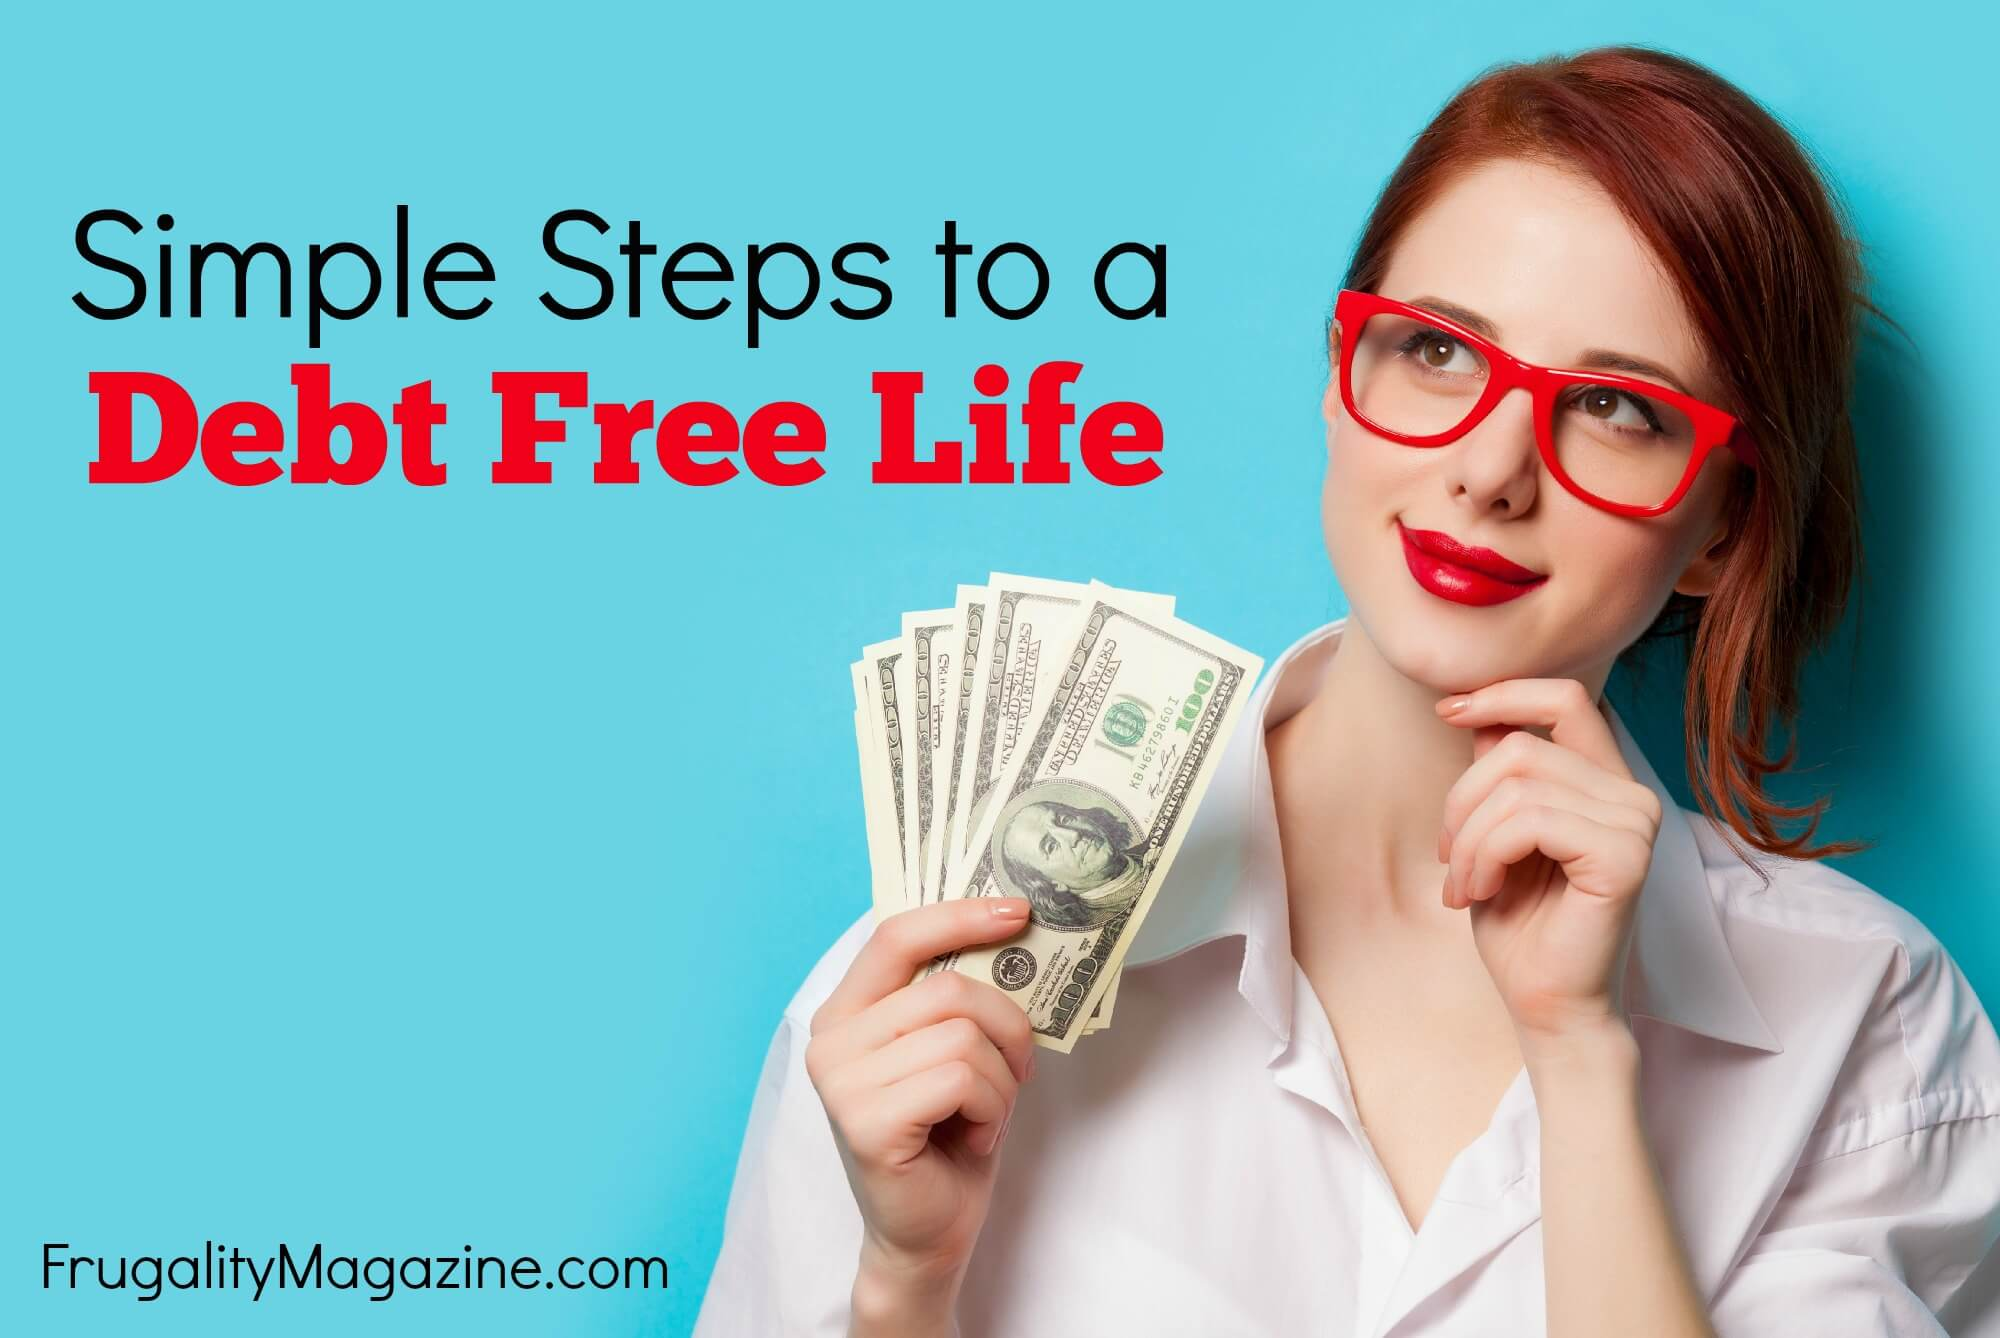 How to Start Living a Debt Free Life